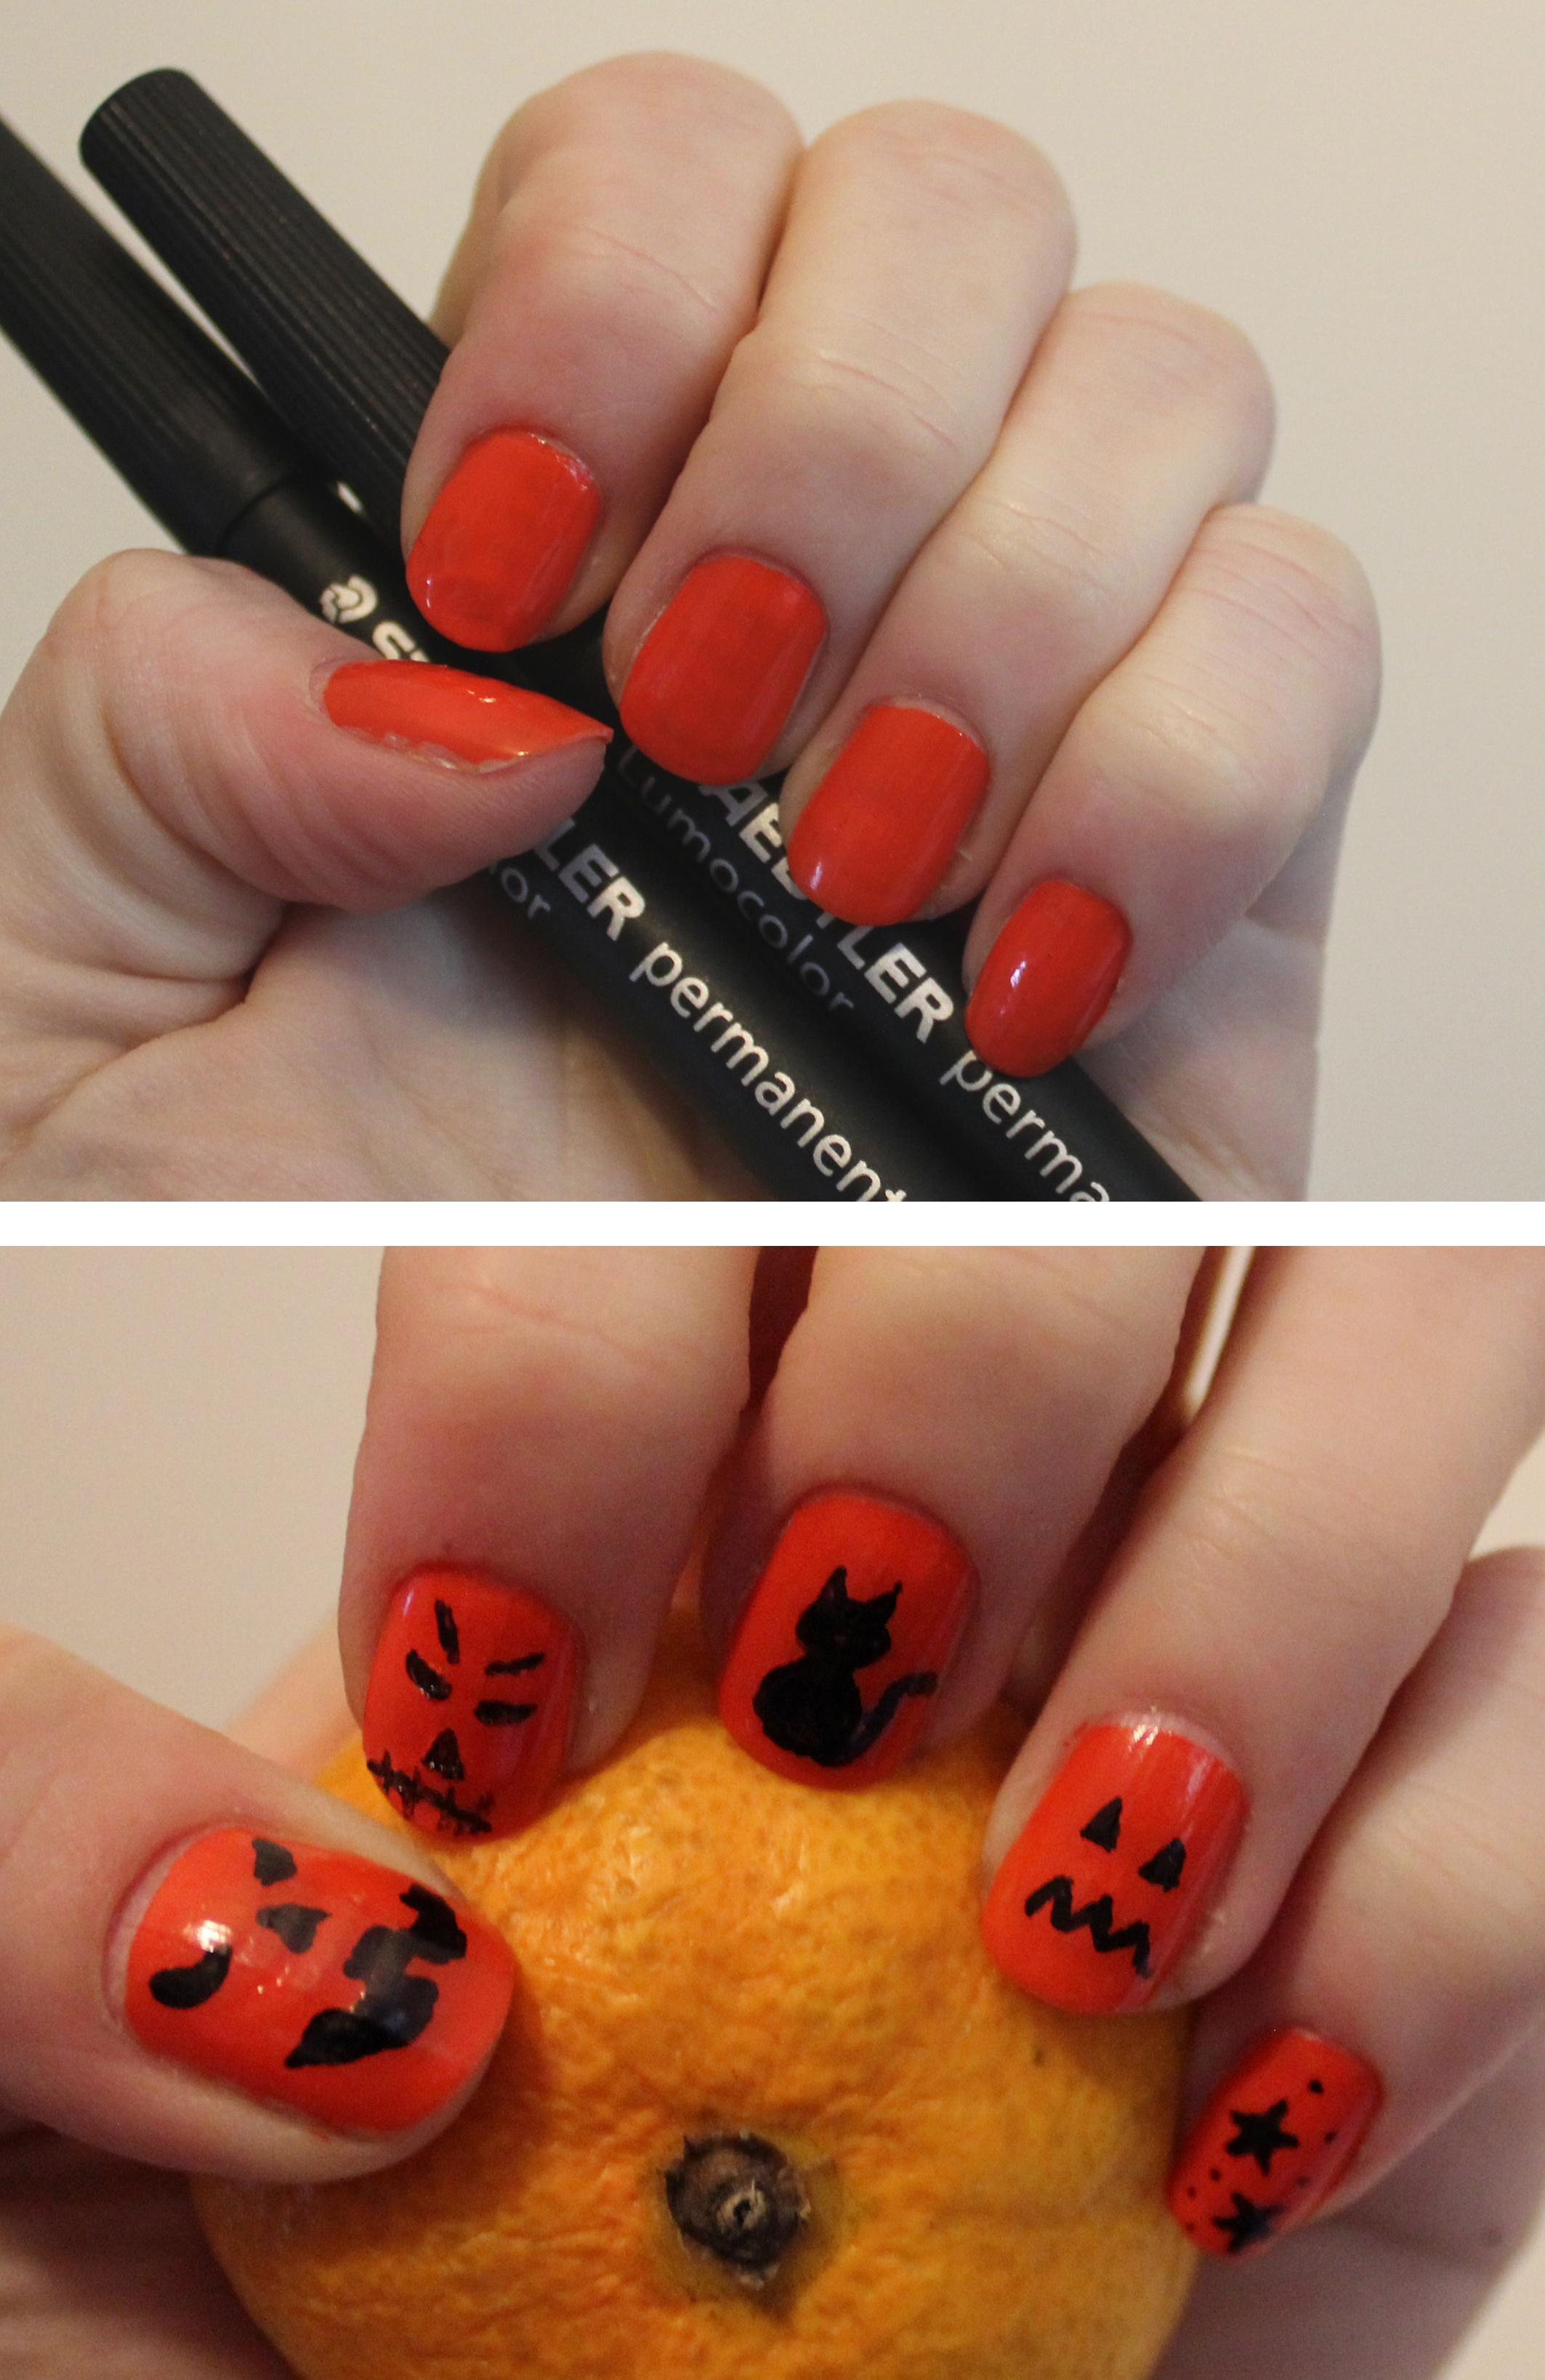 Spooky ideas for DIY Halloween nail art